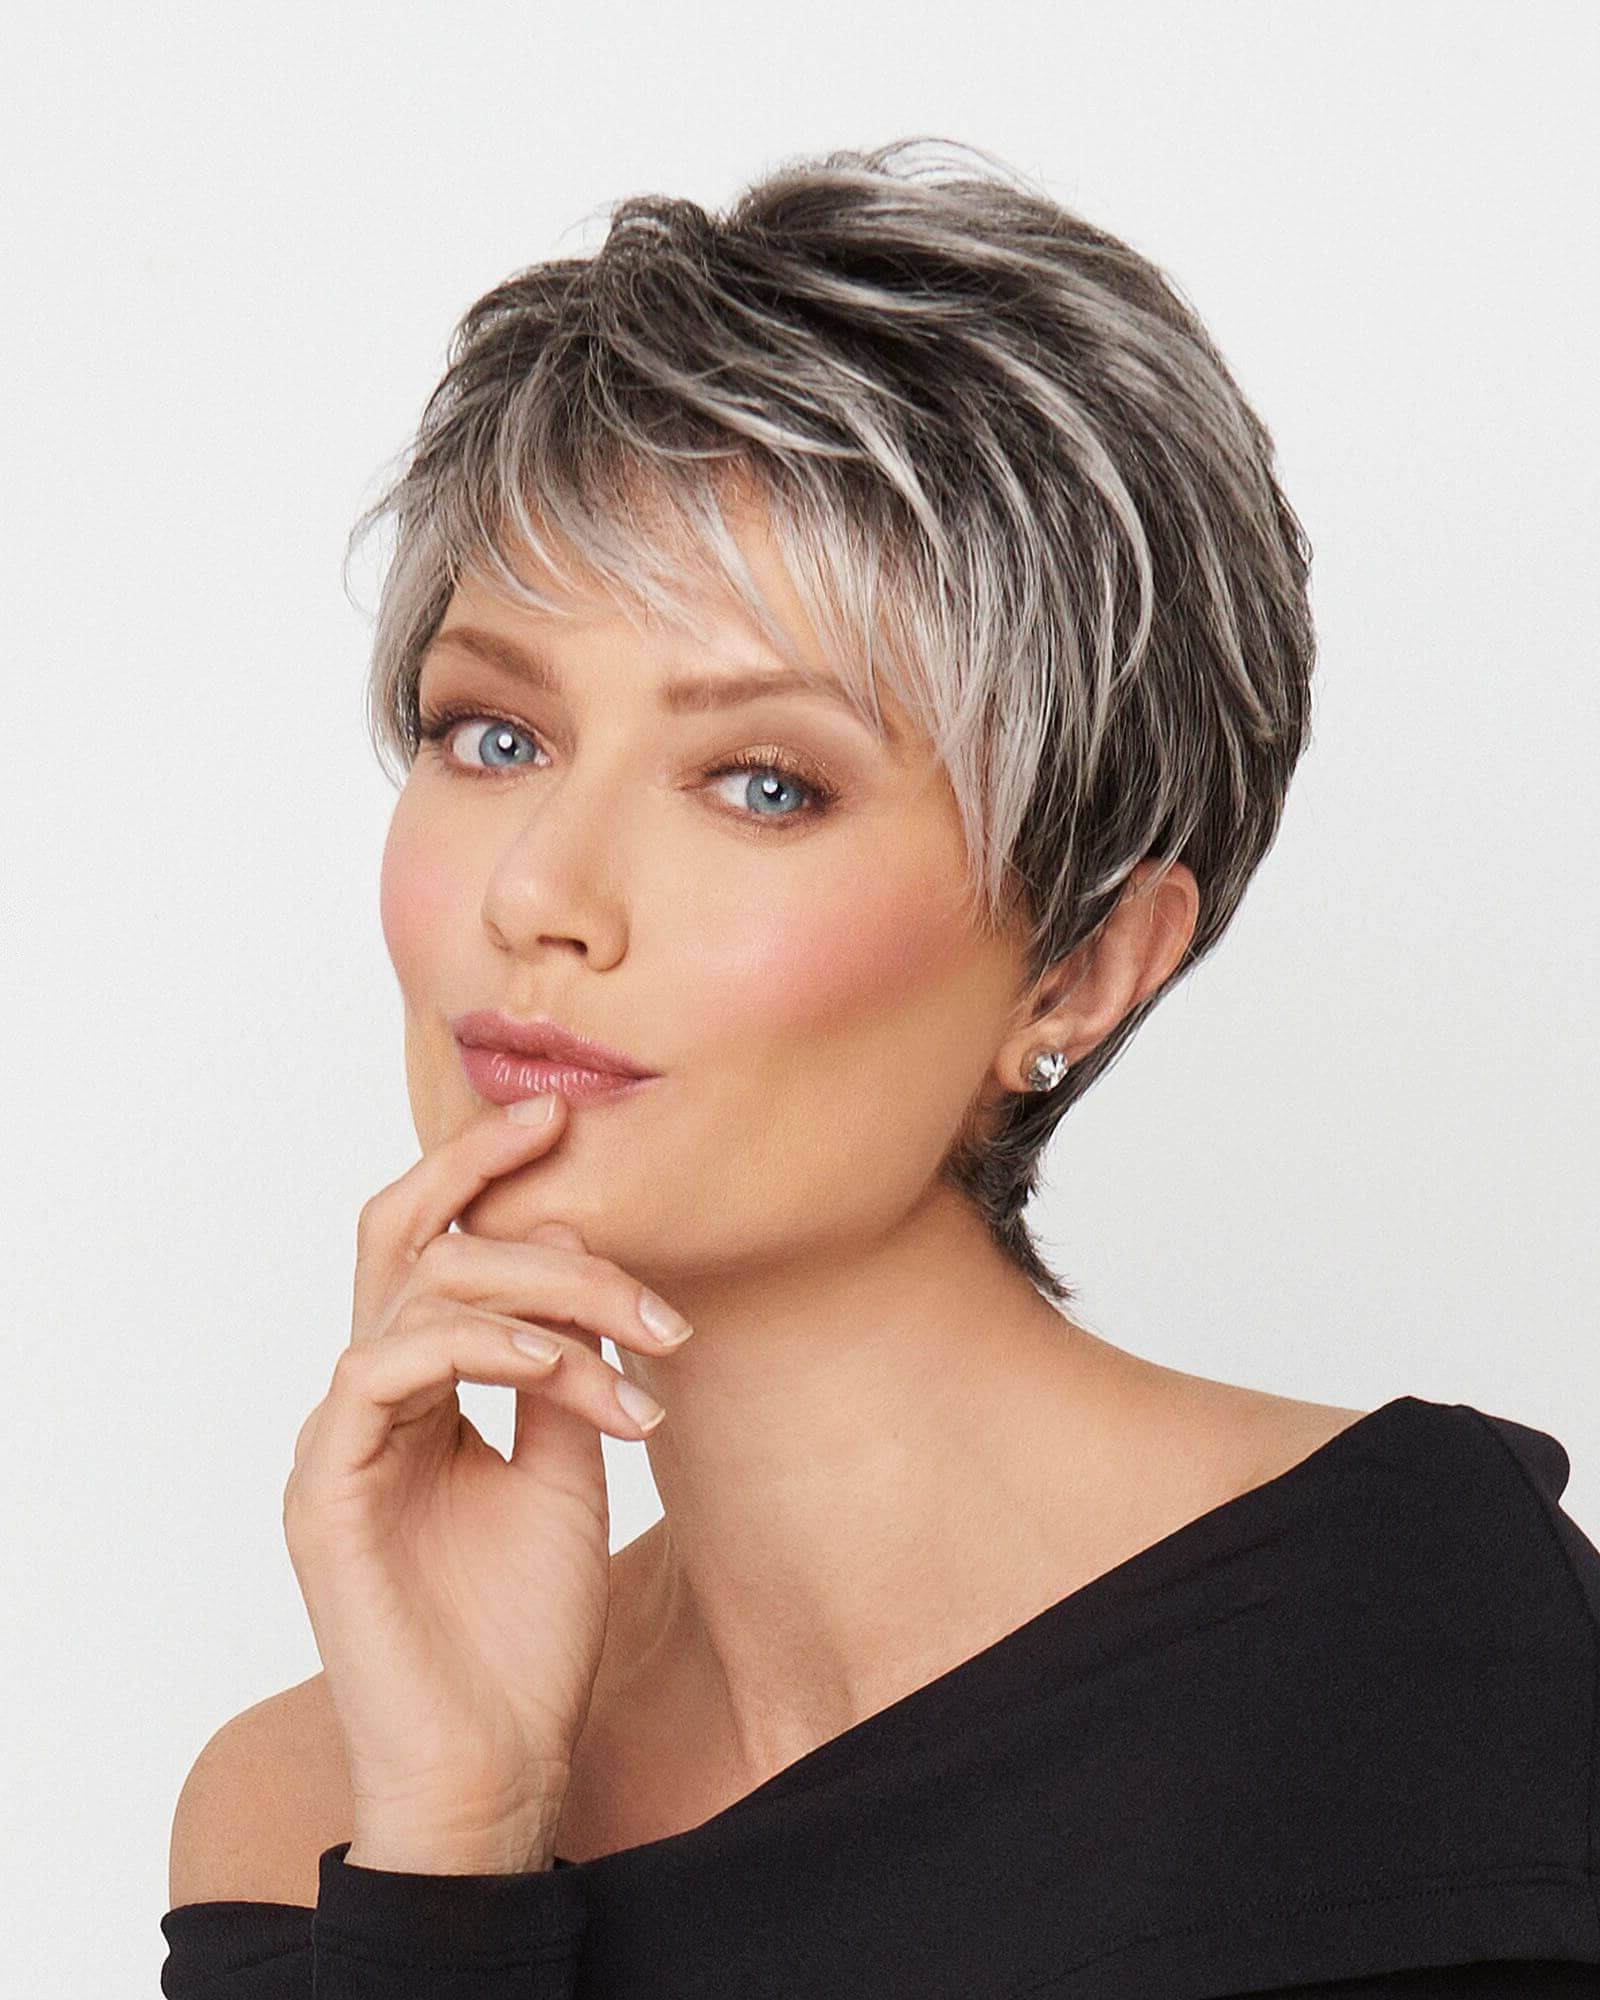 50 Pixie Haircuts You'll See Trending In 2019 With Trendy Pixie Haircuts With Vibrant Highlights (View 15 of 20)